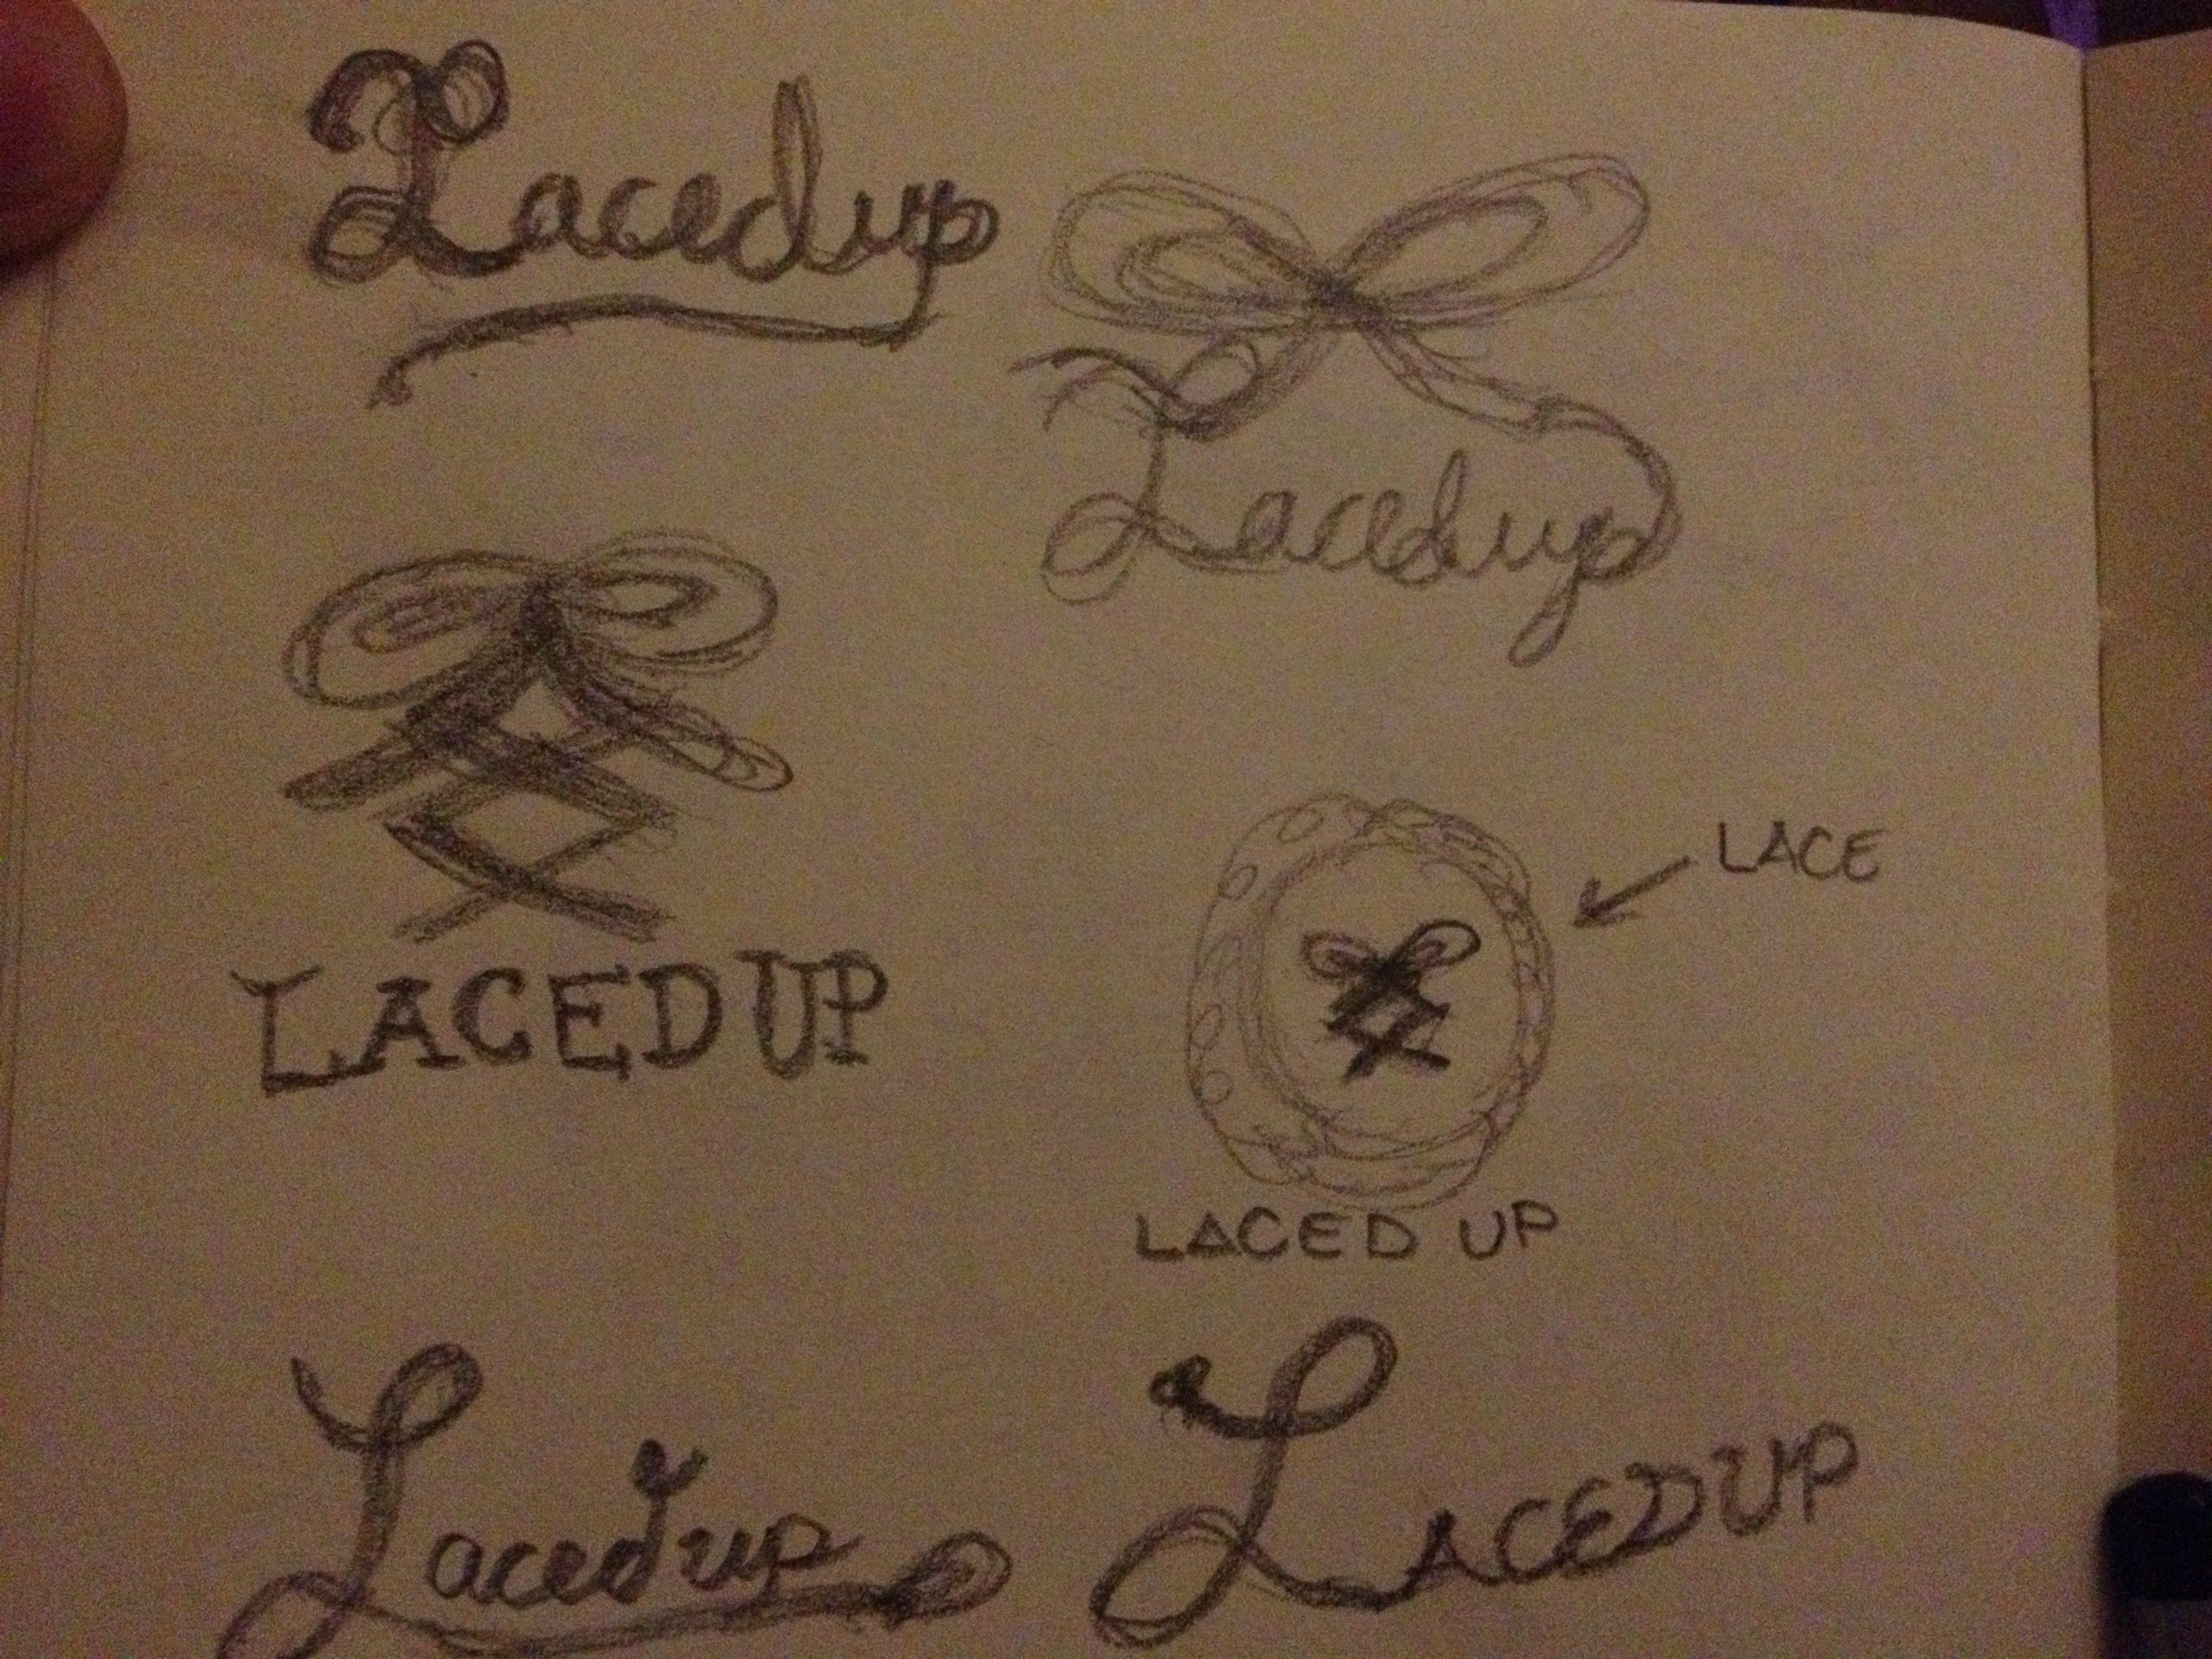 Lacedup Imagery - image 1 - student project